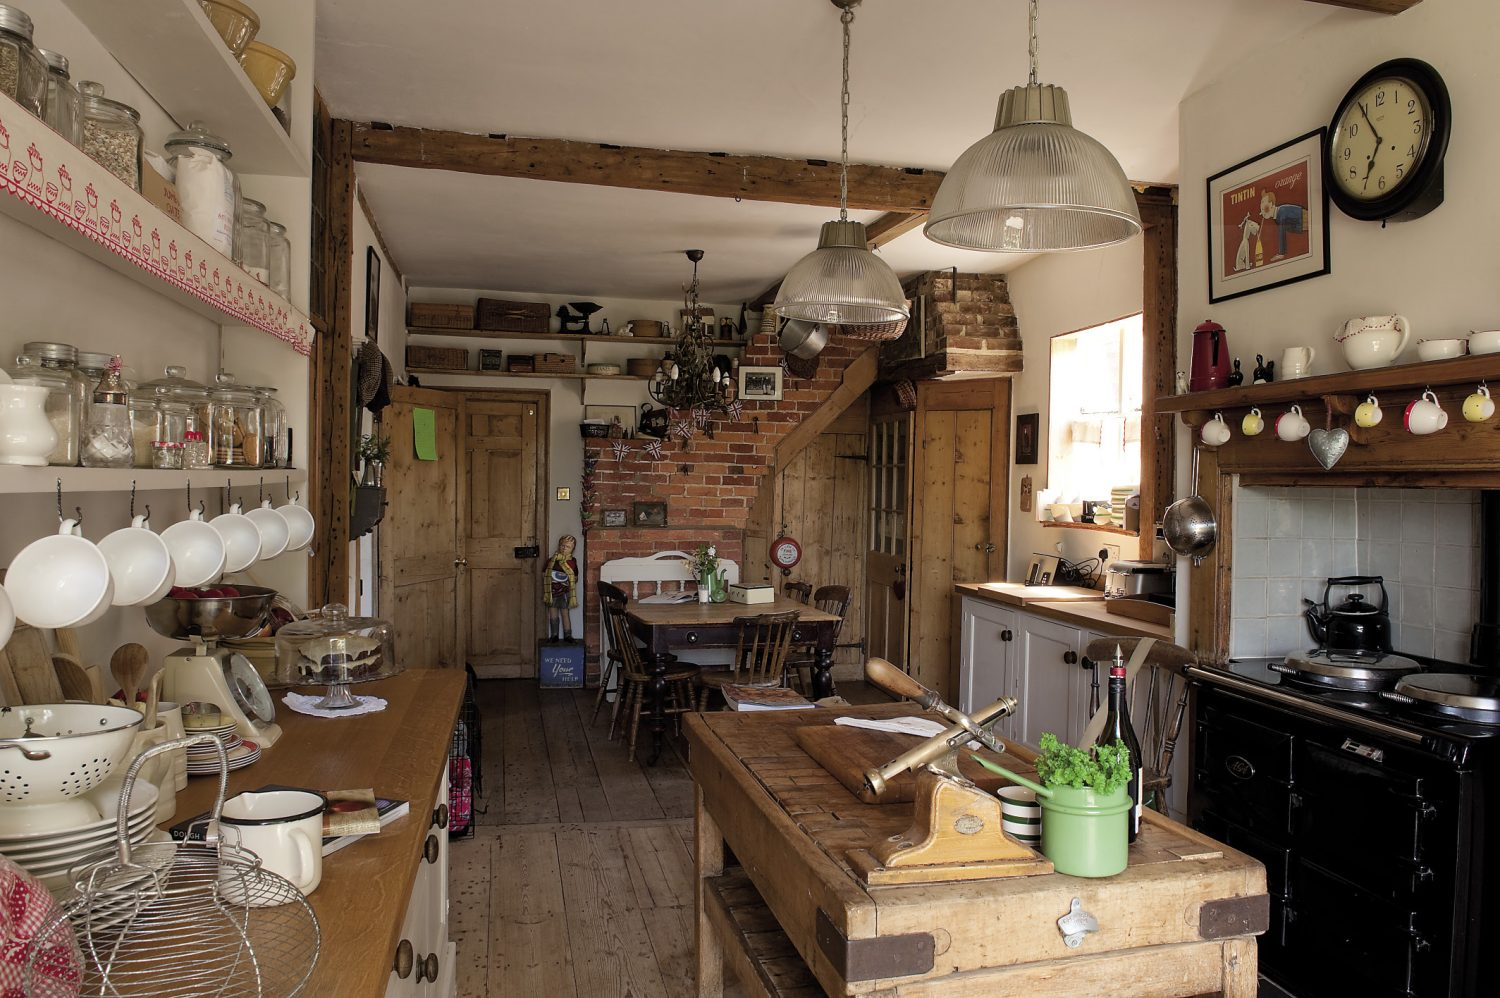 The kitchen is evidently the hub of the house. Simple in tone, it is very much a working environment, with a black enamel Aga and a deeply scored butcher's block in the centre